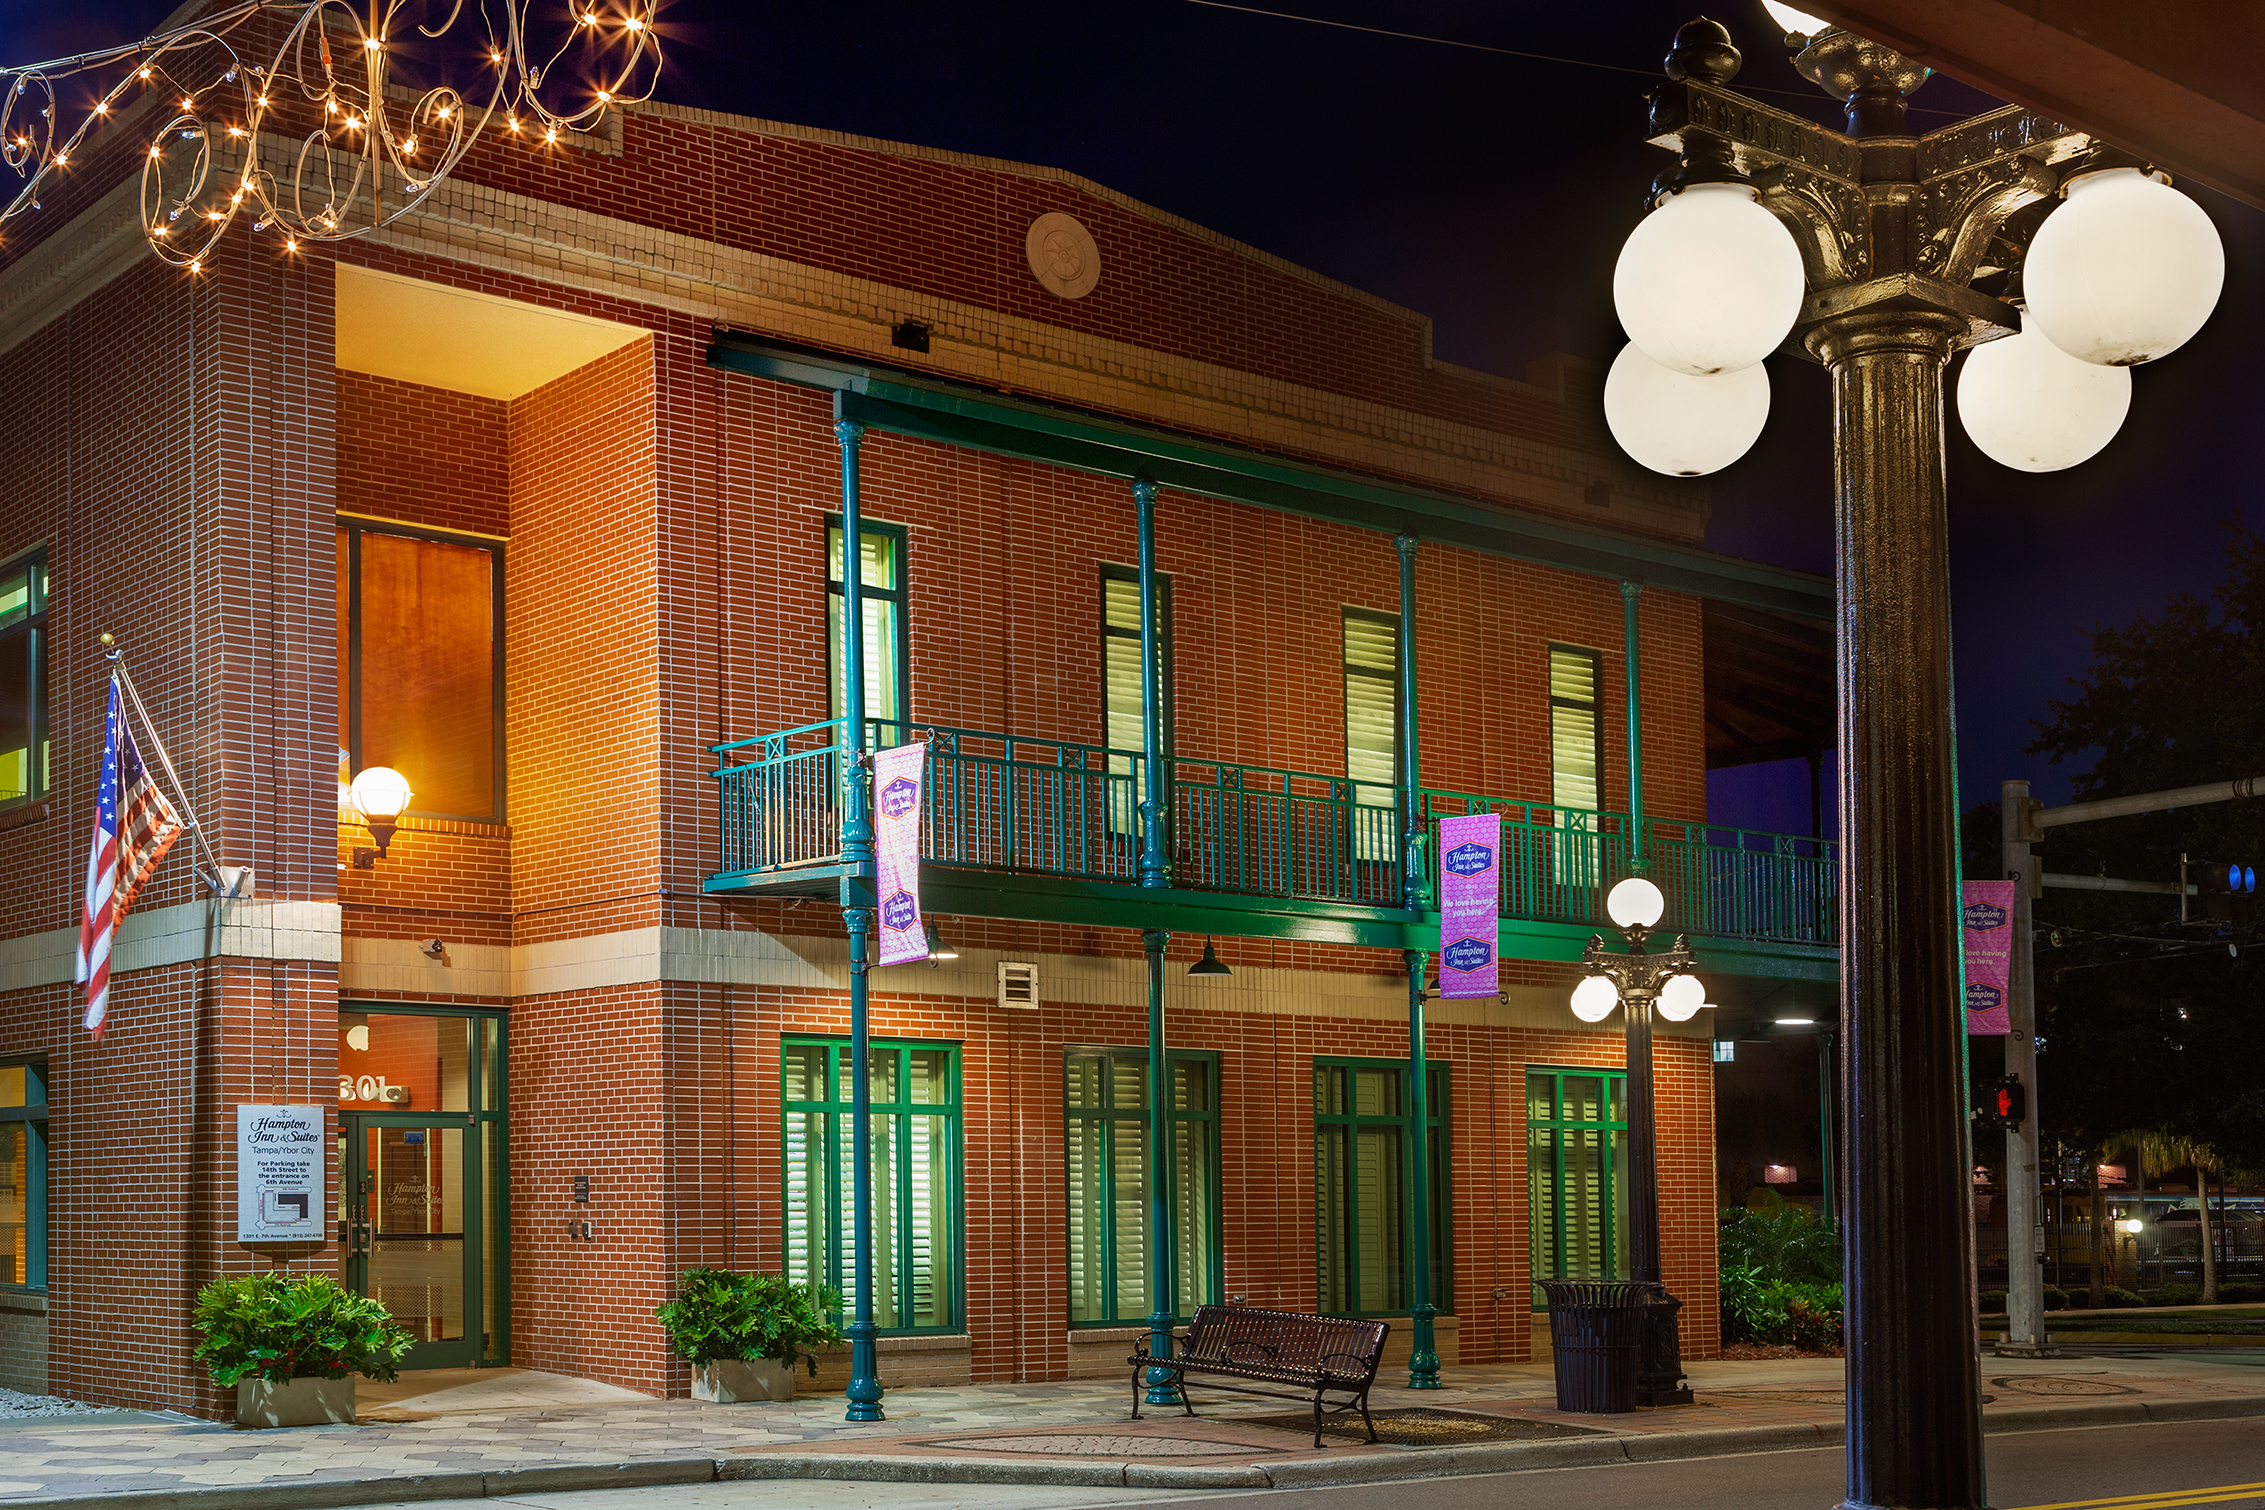 ybor-hampton-7th-ave